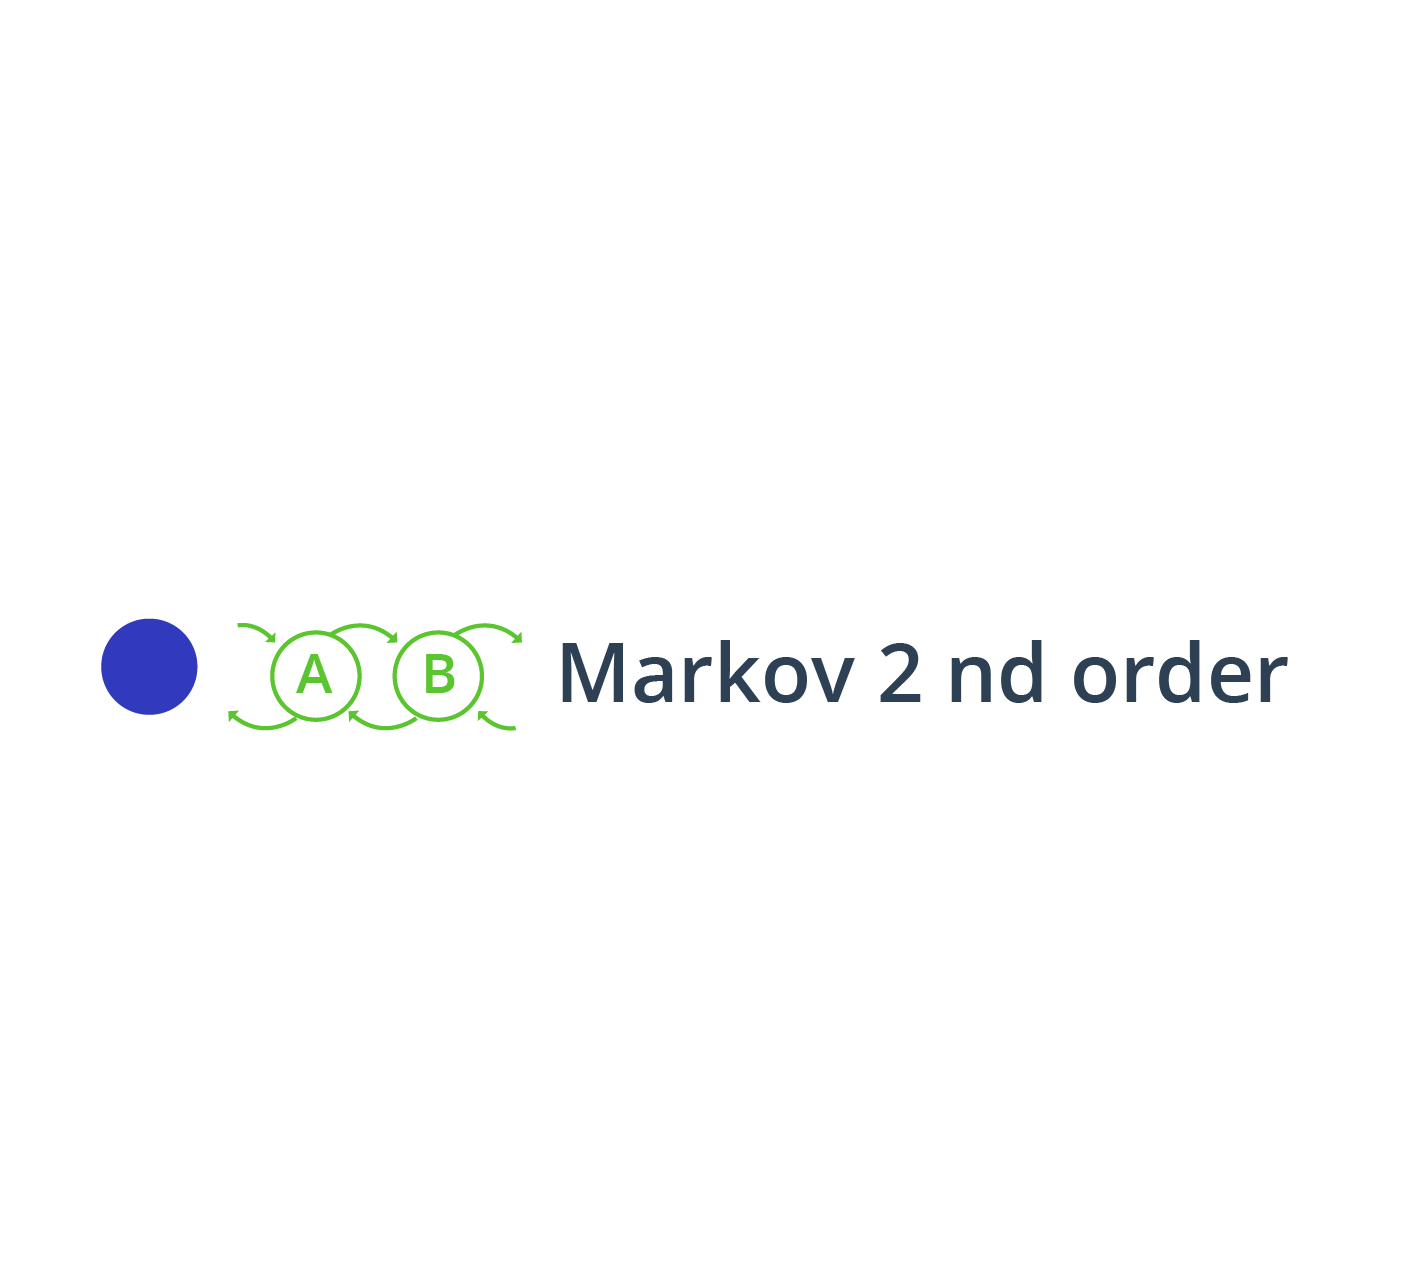 MARKOV CHAIN 2ND ORDER